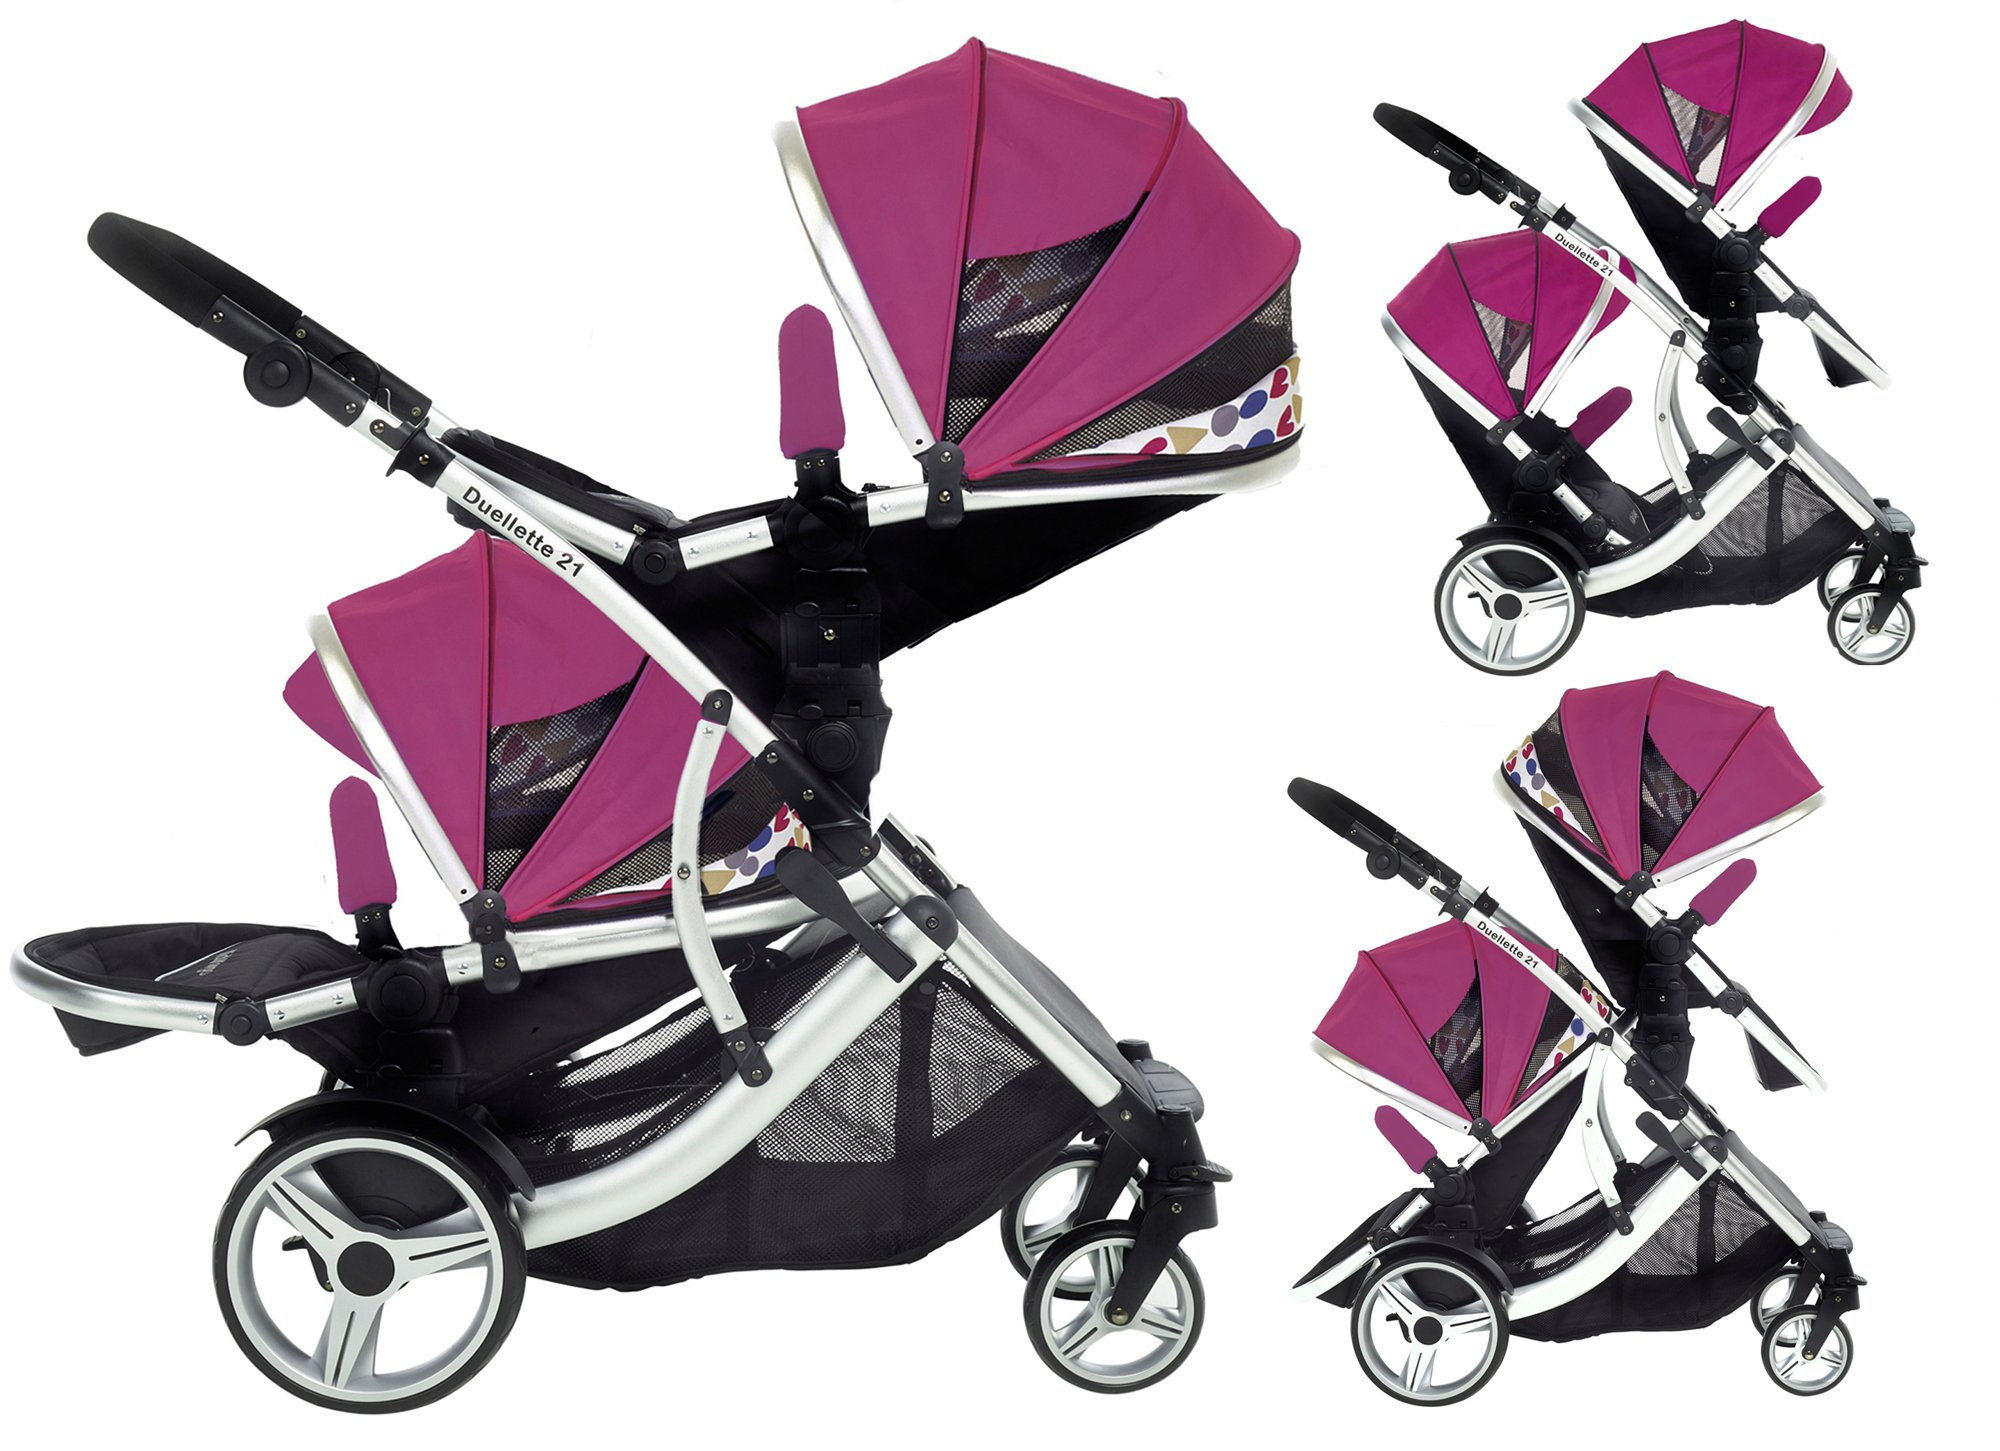 Kids Kargo Double Twin Tandem Pushchair. Duellette BS Suitable for Twins from 6 months. Stroller by Kids Kargo (Dooglebug raspberry) Kids Kargo Demo video please see link http://youtu.be/Ngj0yD3TMSM Various seat positions. Both seats can face mum (ideal for twins) Suitability Twins (Newborn Twins if used with car seats). Accommodates 1 or 2 car seats 1